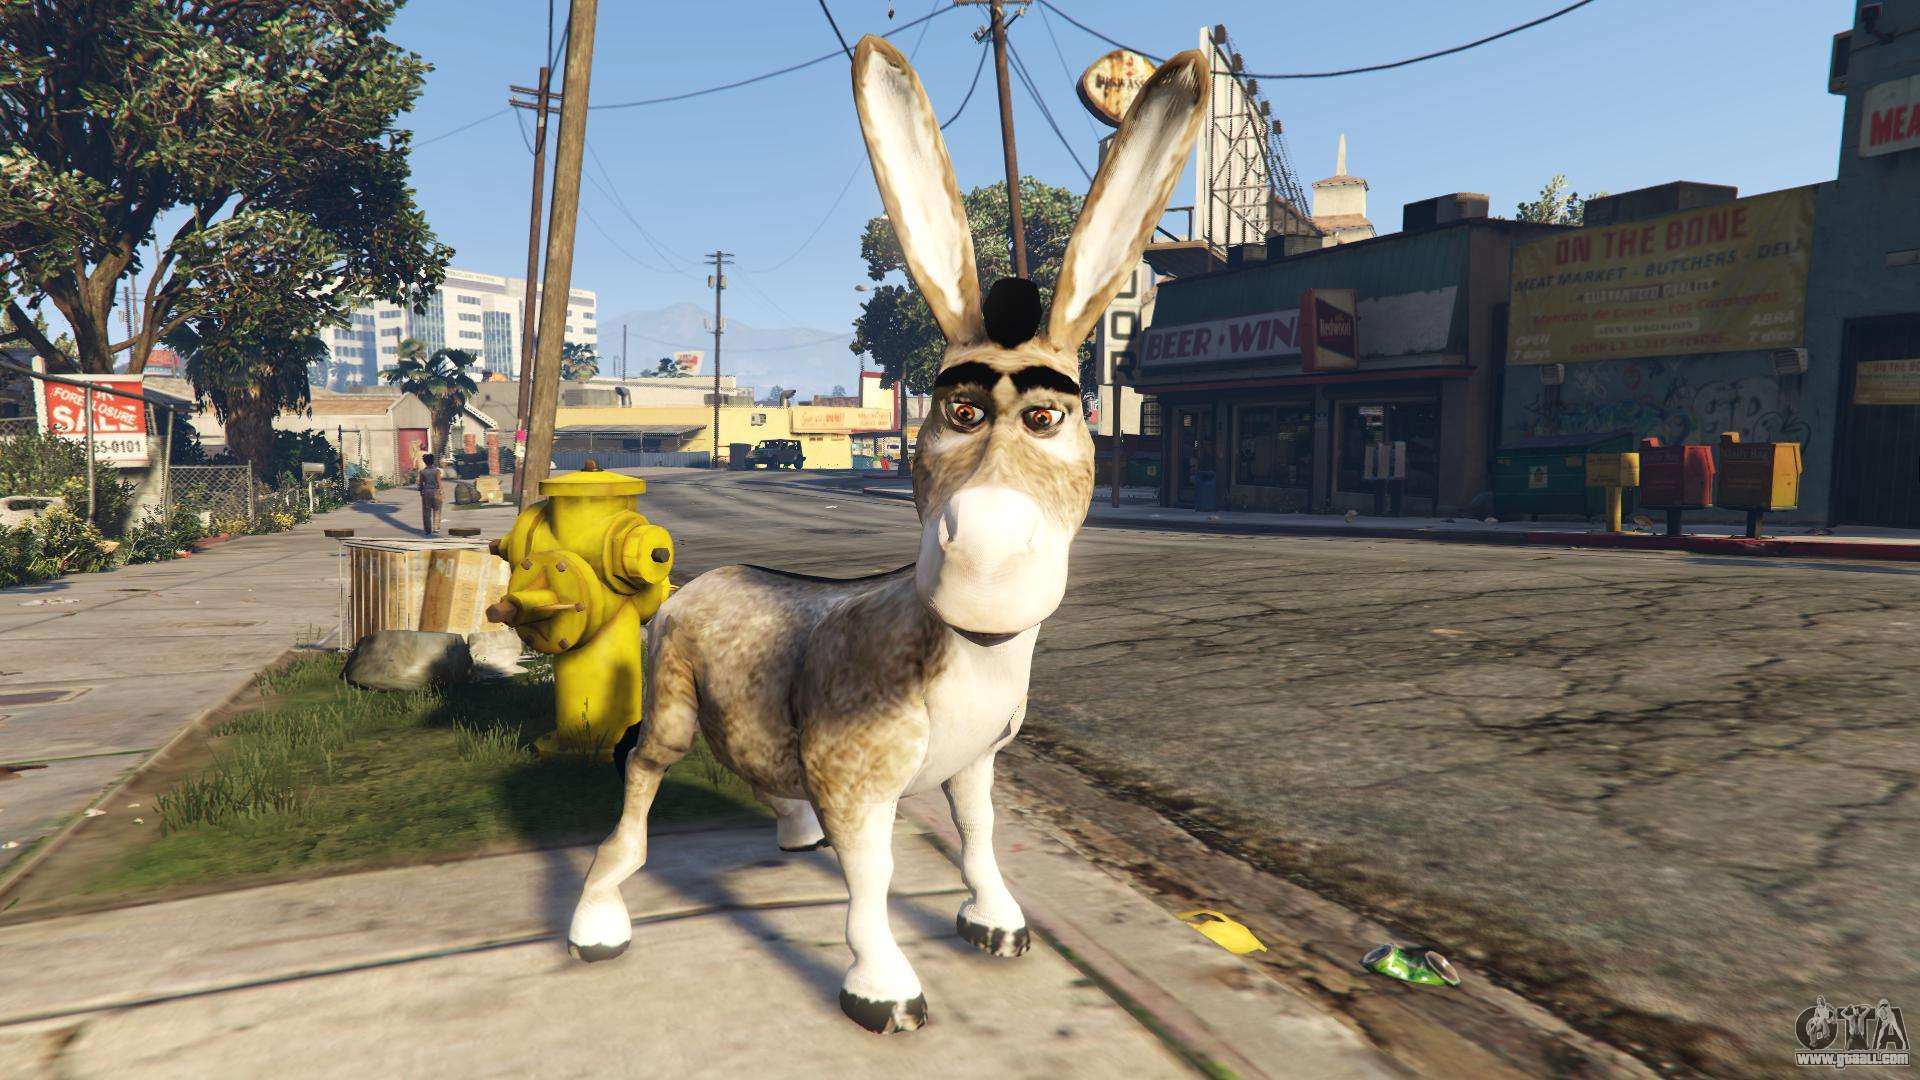 gta 3 cheat for helicopter with 85117 Donkey Form Shrek on Gta V Cheats moreover 85117 Donkey Form Shrek additionally 69663 Mh 6 Ah 6 Little Bird Marine further plete List Of Gta 5 Cheat Codes also Grand Theft Auto Iv.